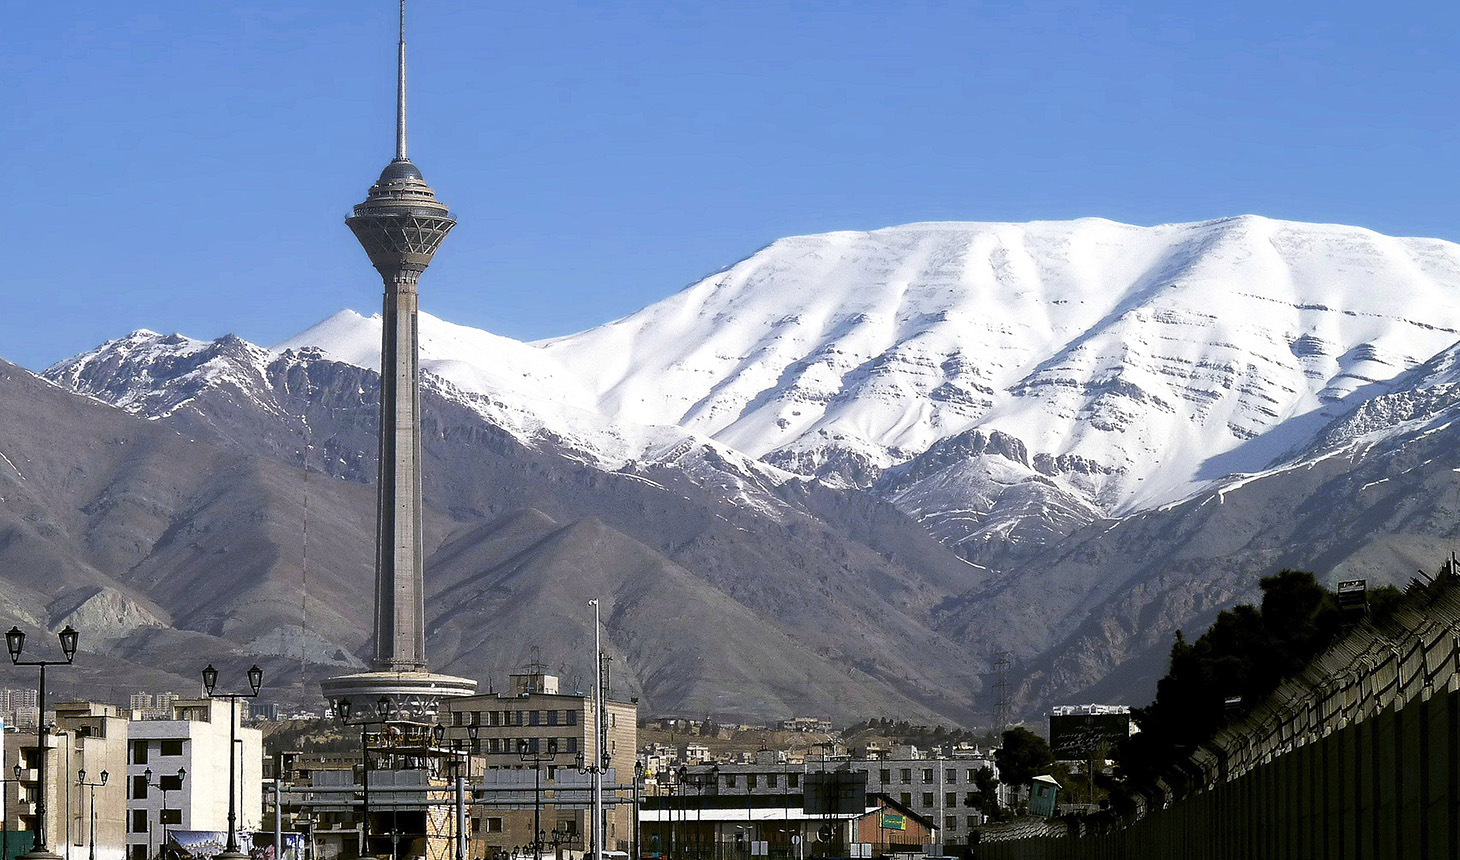 Tehran, Iran, is home to the country's National Research Institute on Tuberculosis and Lung Diseases. Photo from Flickr/Javad Saharban, CC 2.0.